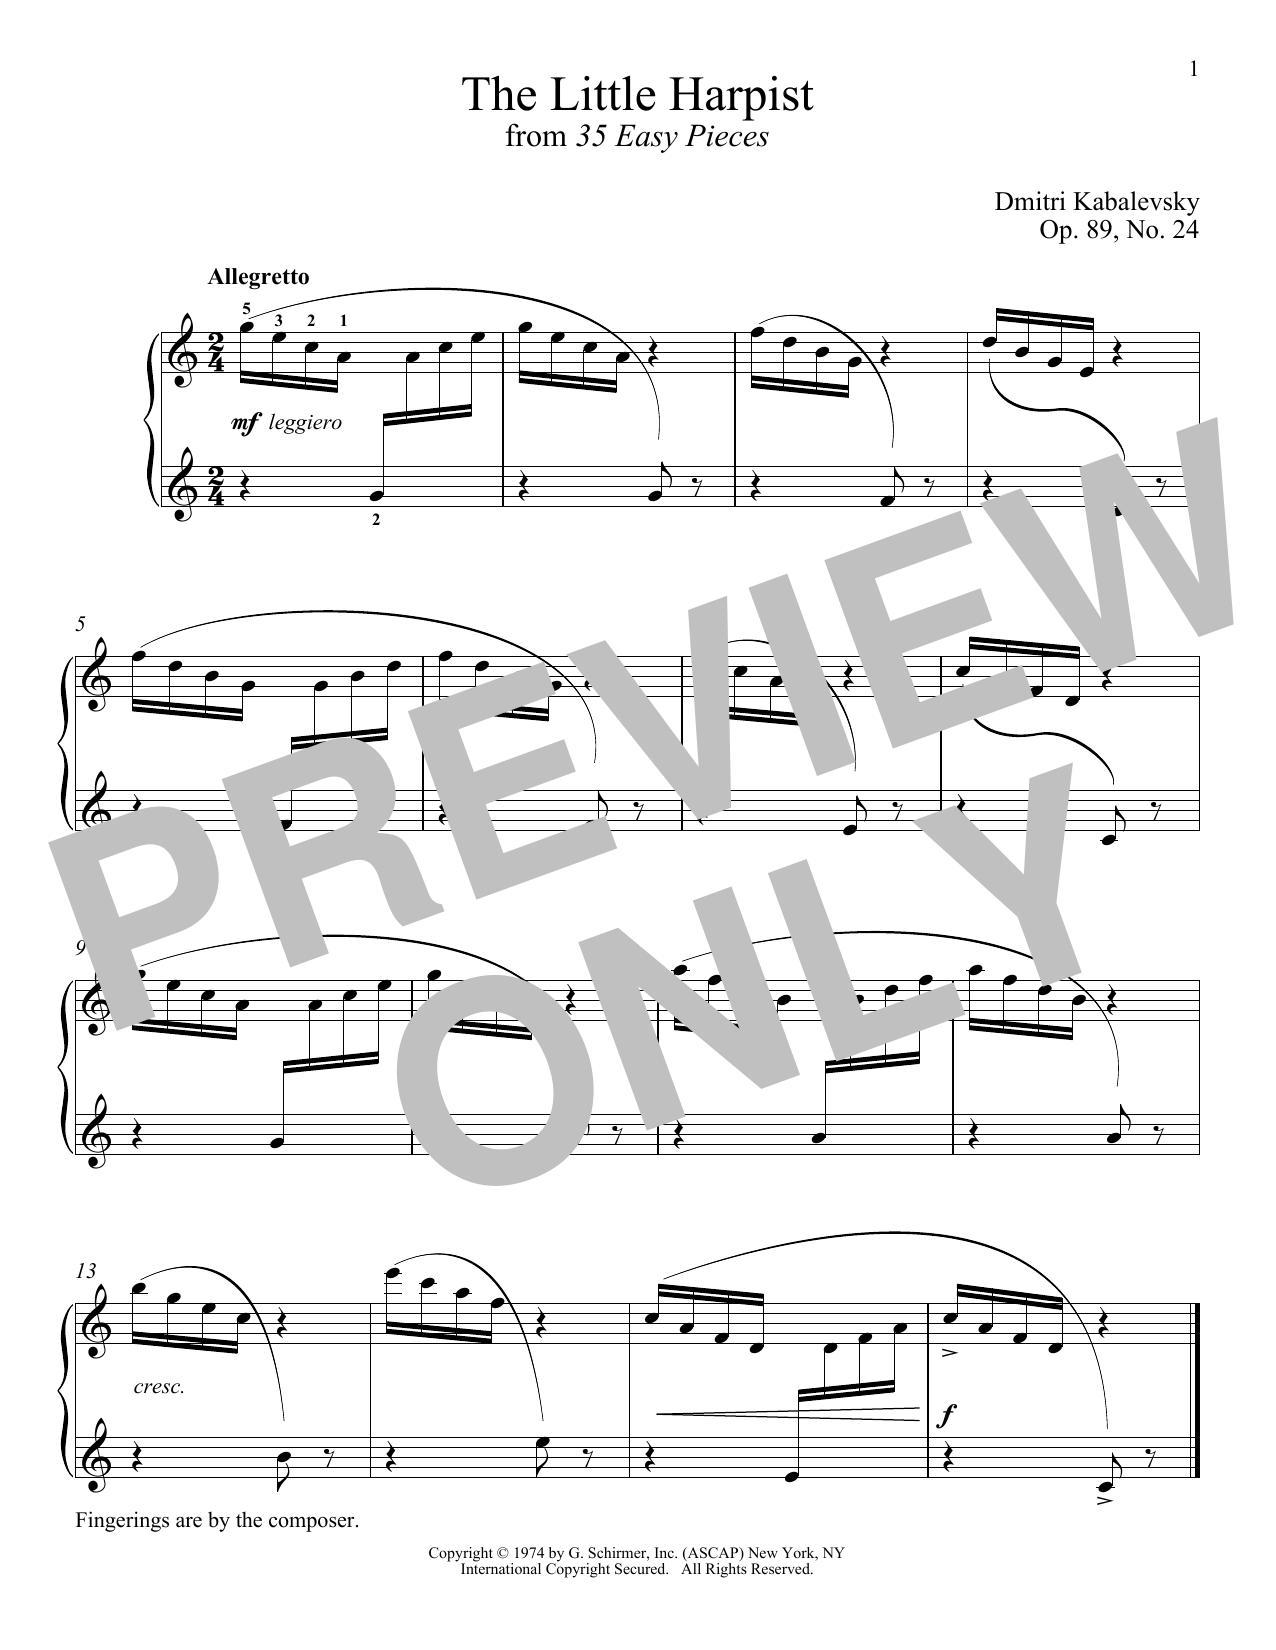 Download Dmitri Kabalevsky 'The Little Harpist, Op. 89, No. 24' Digital Sheet Music Notes & Chords and start playing in minutes